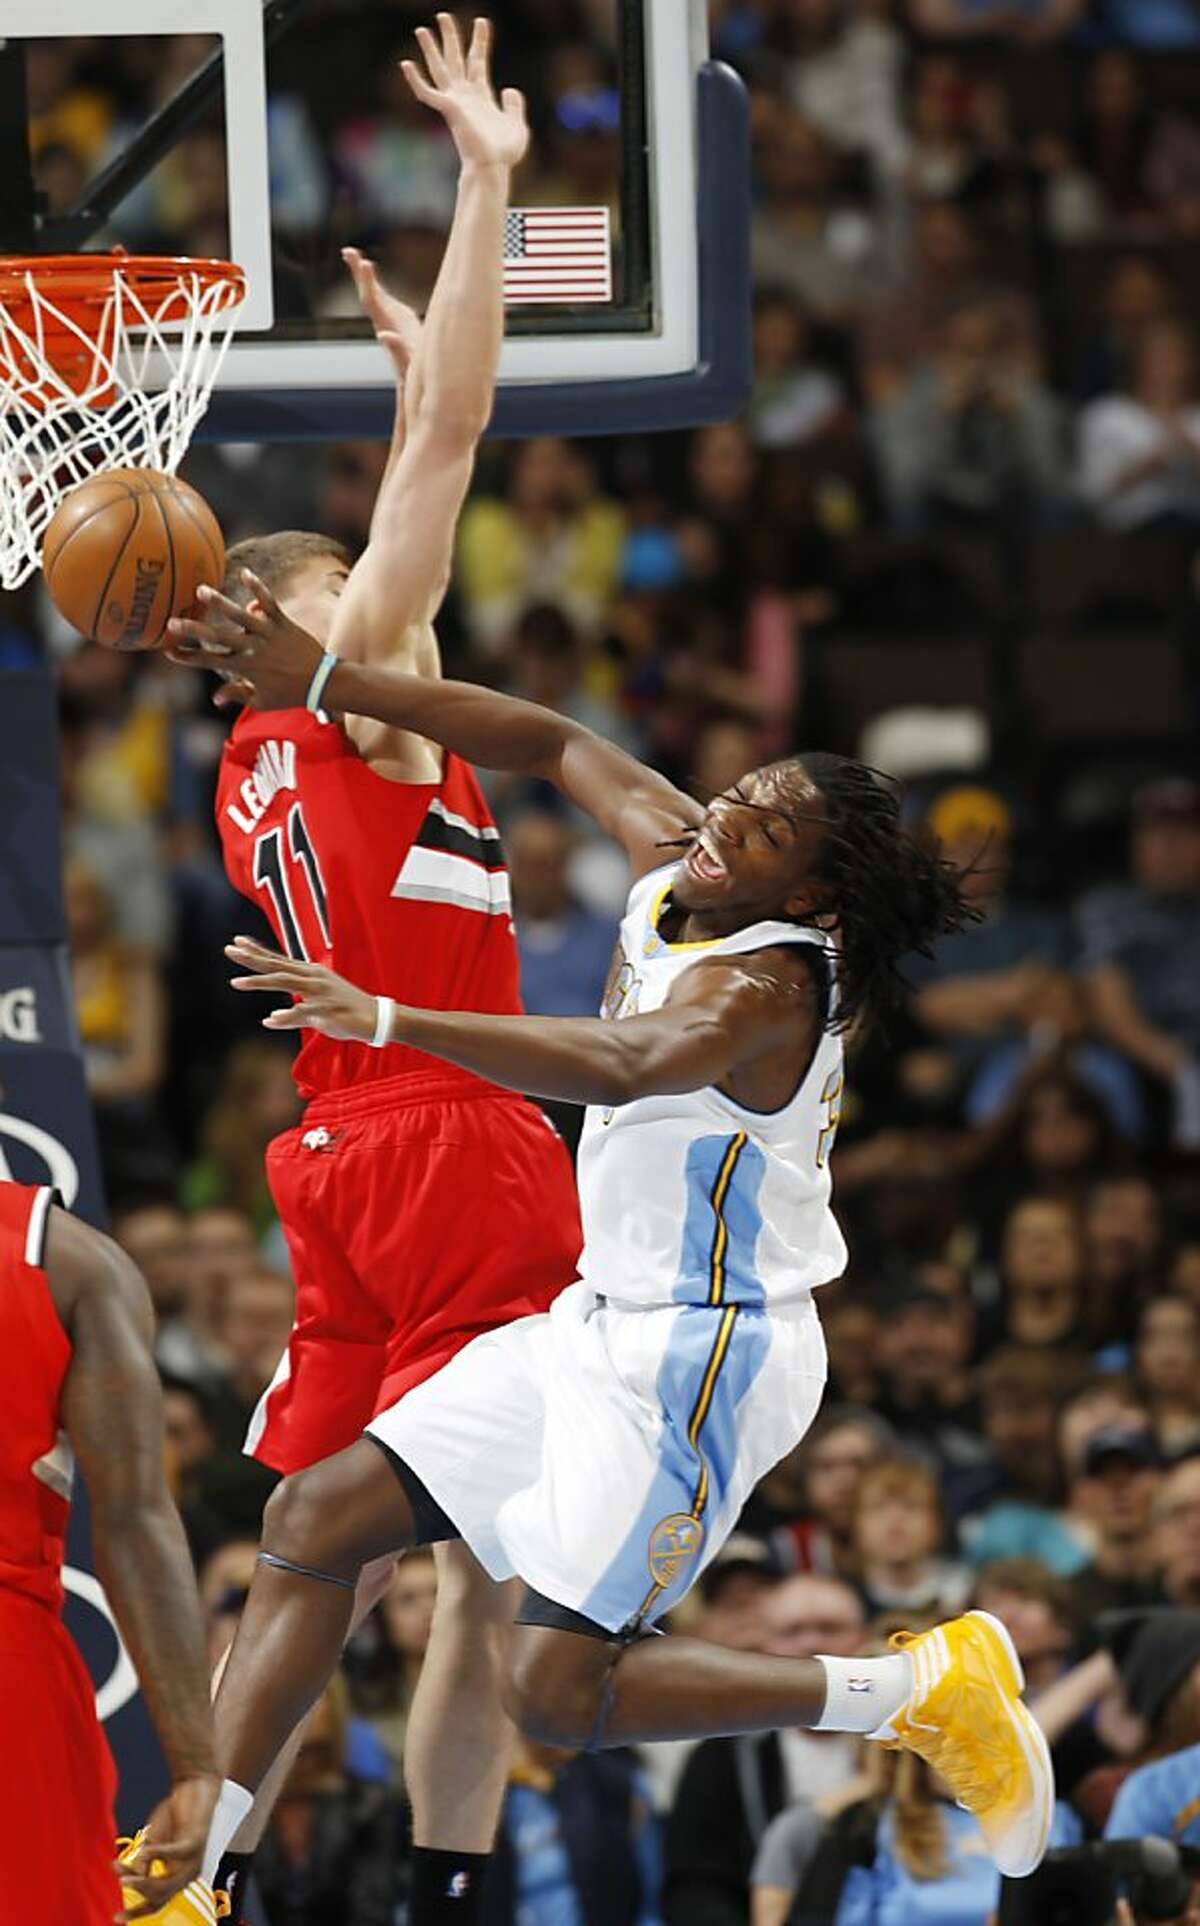 Denver Nuggets forward Kenneth Faried, front, collides with Portland Trail Blazers center Meyers Leonard while driving the lane in the first quarter of an NBA basketball game in Denver on Sunday, April 14, 2013. Inital reports from the team say that Faried suffered a sprained ankle on the play and was forced to leave the game. (AP Photo/David Zalubowski)